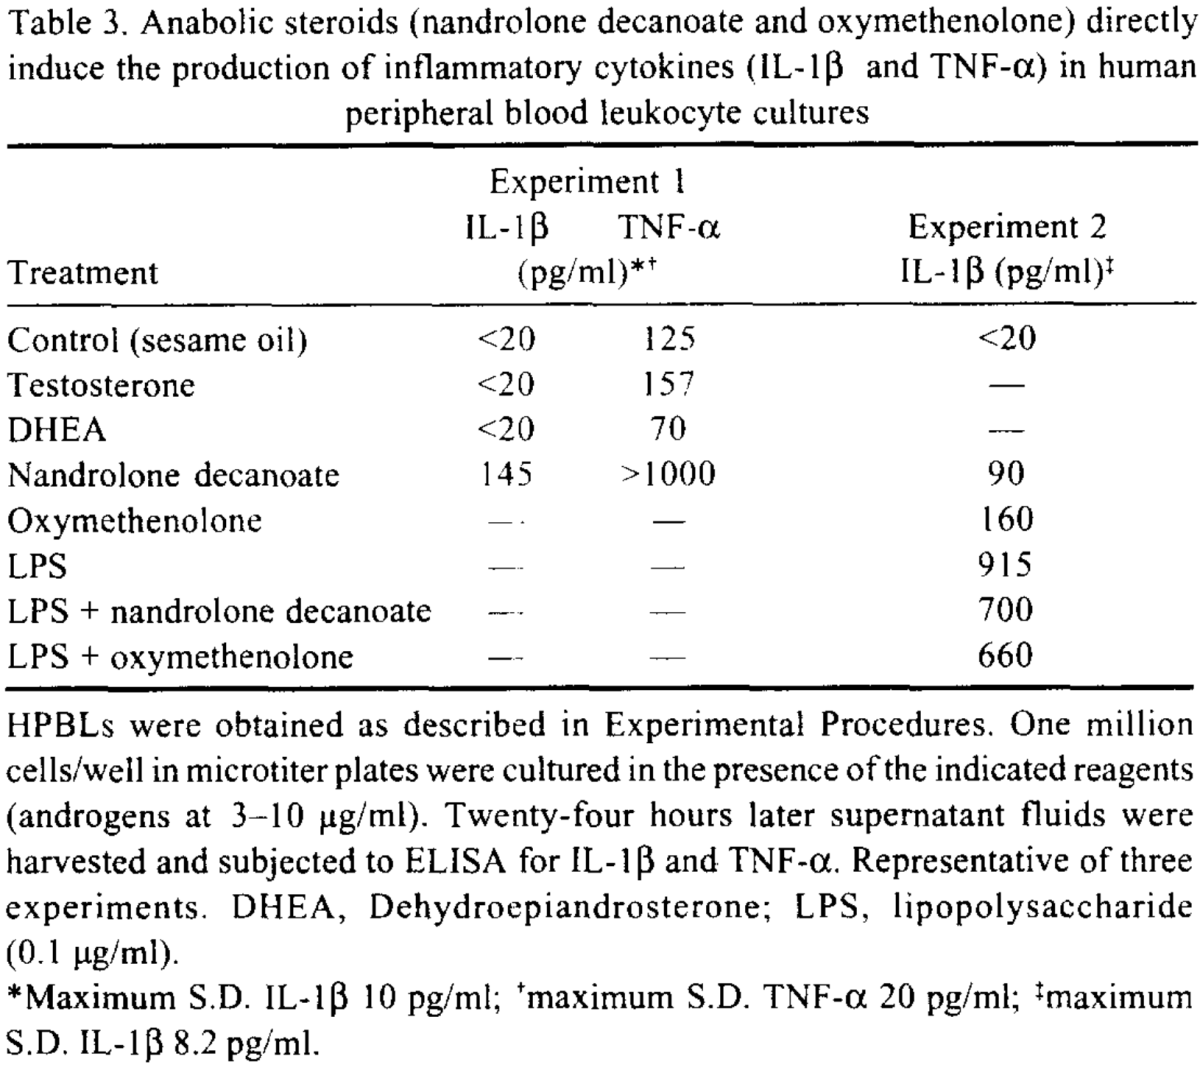 Nandrolone Decanoate and Anadrol affect the immune system directly by inducing the production of inflammatory cytokines Interleukin 1 Beta (IL-1β) and Tumor Necrosis Factor Alpha (TNF-α) in human peripheral blood leukocyte cultures